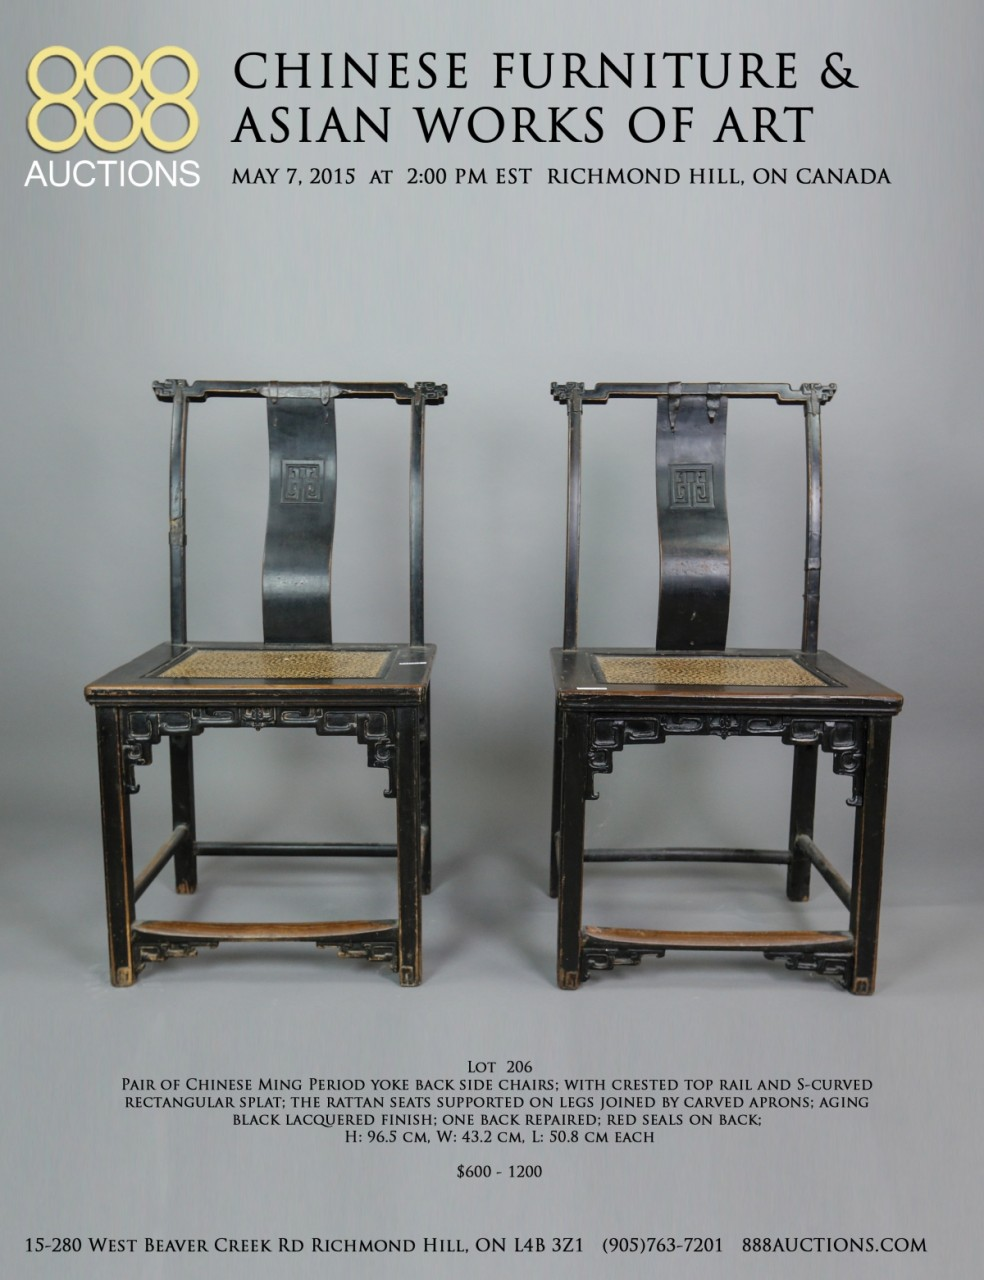 07 MAY 2015 CHINESE FURNITURE & ASIAN WORKS OF ART